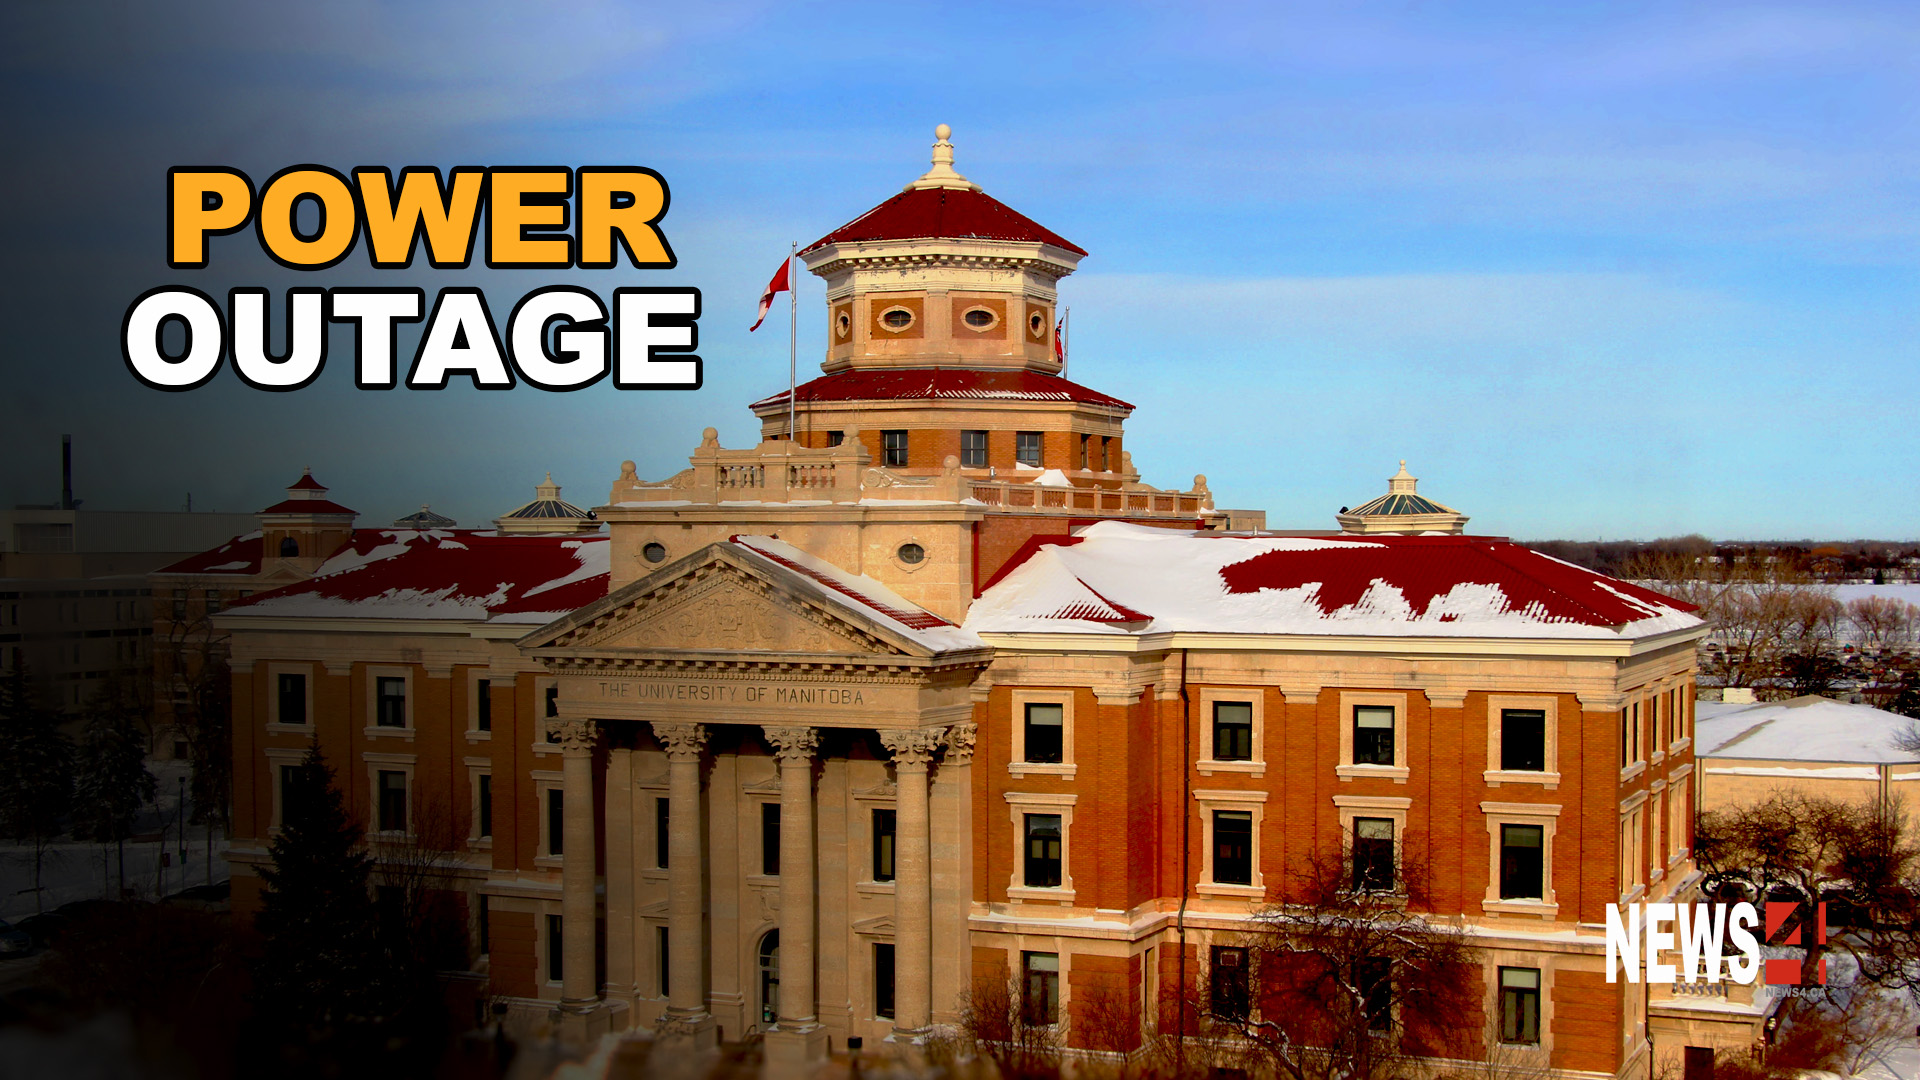 power outage cancels classes at university of manitoba